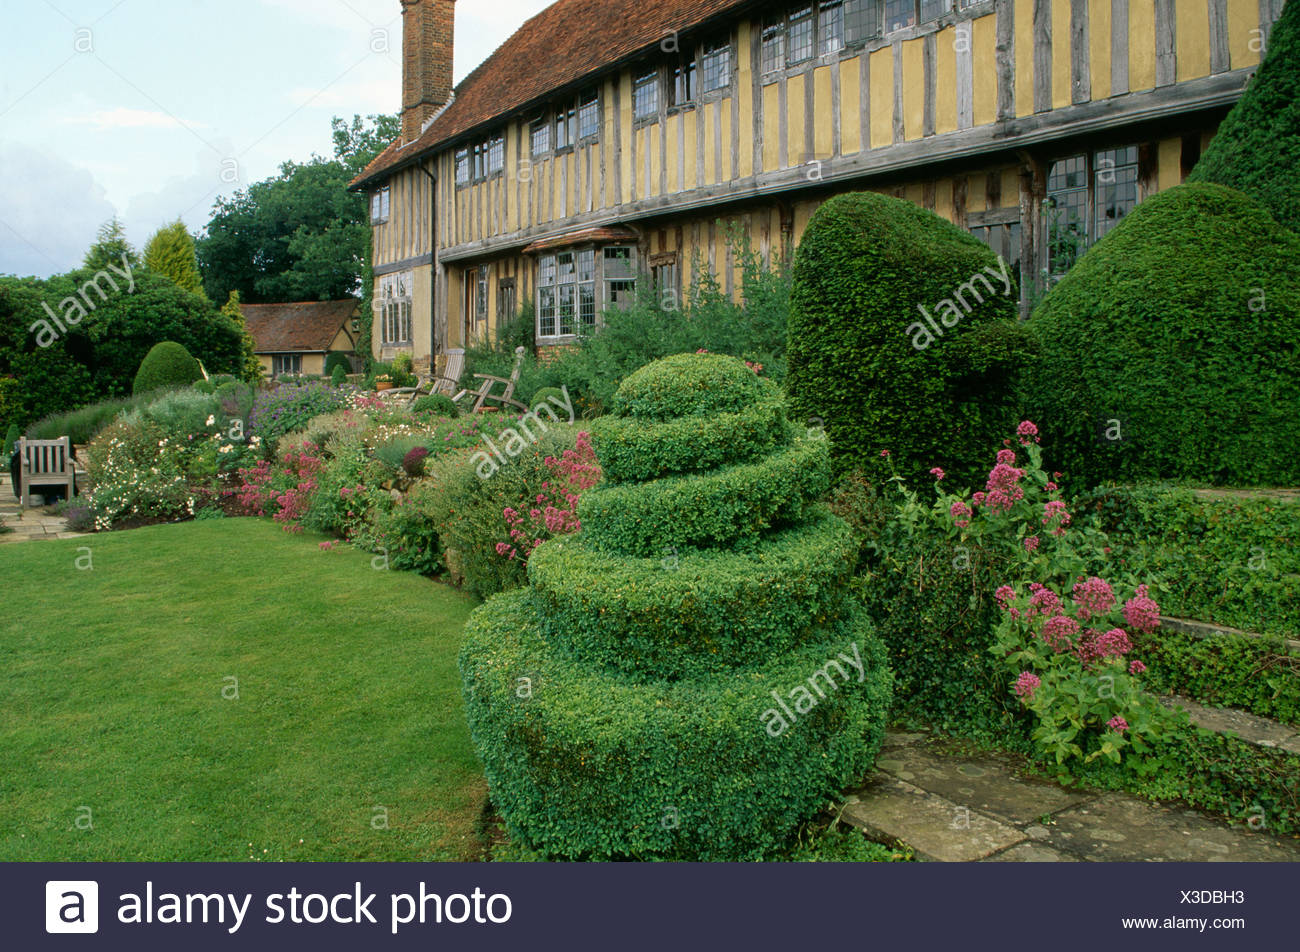 Spiral Topiary Shrubs In Border In Front Of Large Timbered Medieval Country House Stock Photo Alamy